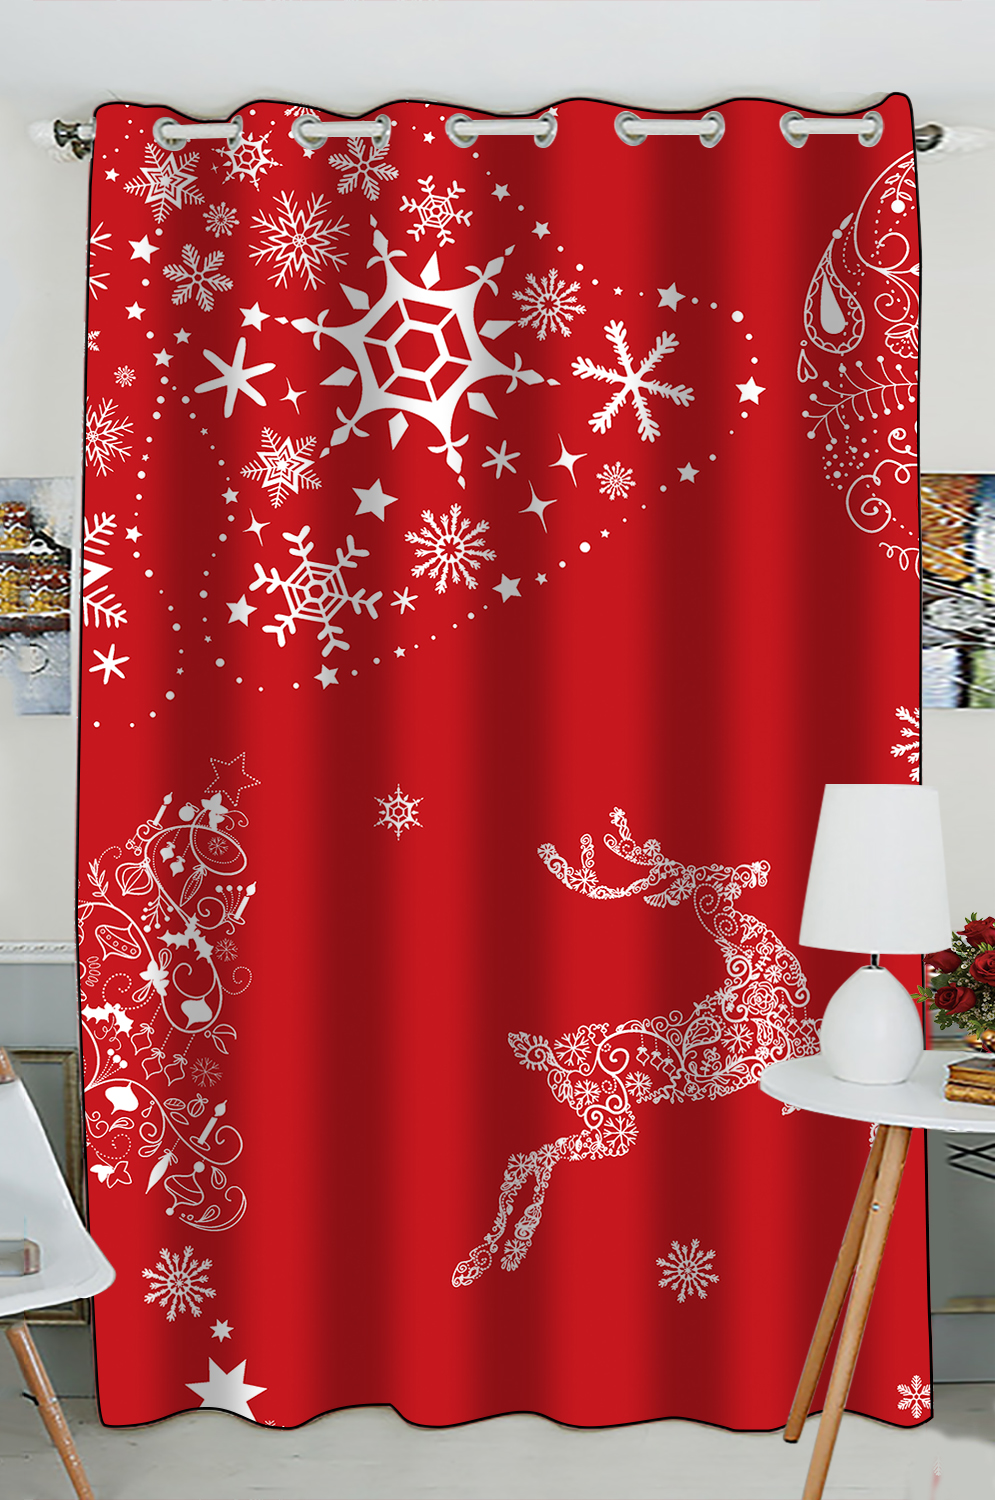 Gckg Christmas Window Curtain Xmas Merry Christmas Reindeer Red Grommet Blackout Curtain Room Darkening Curtains For Bedroom And Kitchen Size 52 W X 84 H Inches One Piece Walmart Com Walmart Com